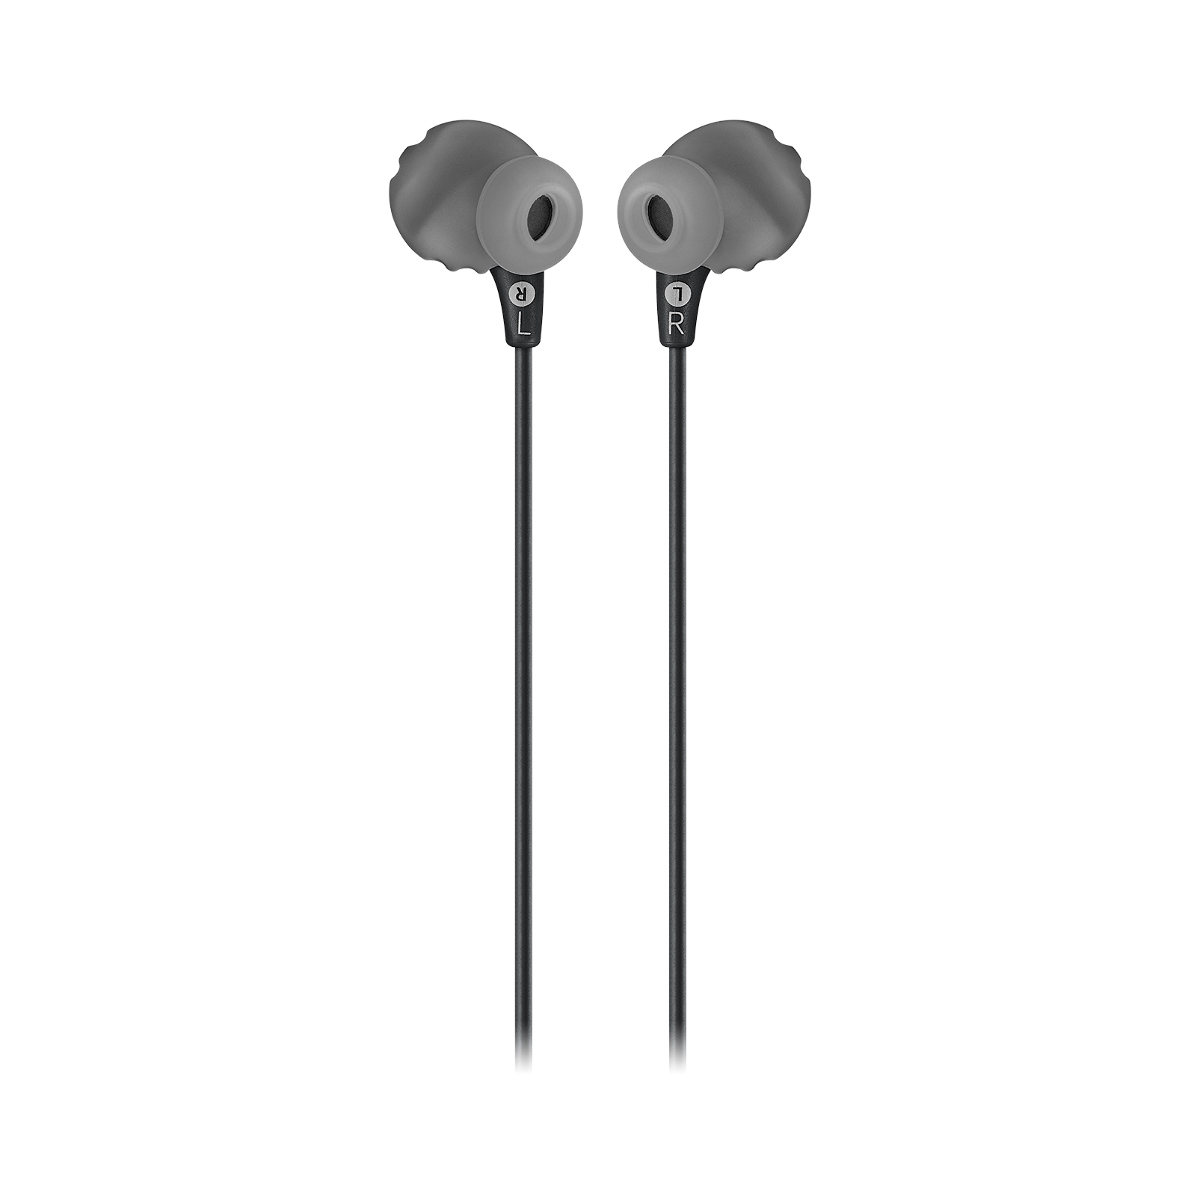 JBL Endurance RUN In-Ear Headphones - Color: Black, Black, large, image 3